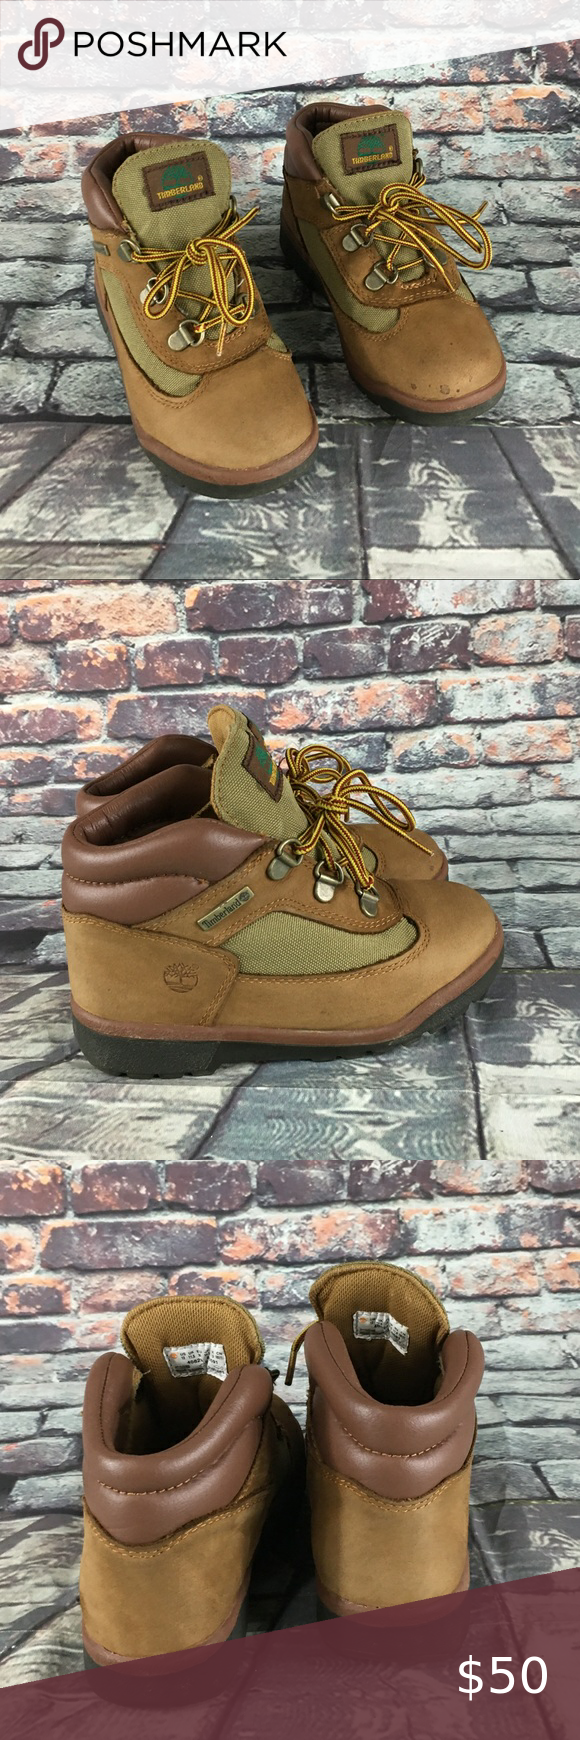 Timberland Boot Toddlers boy Size 12 in